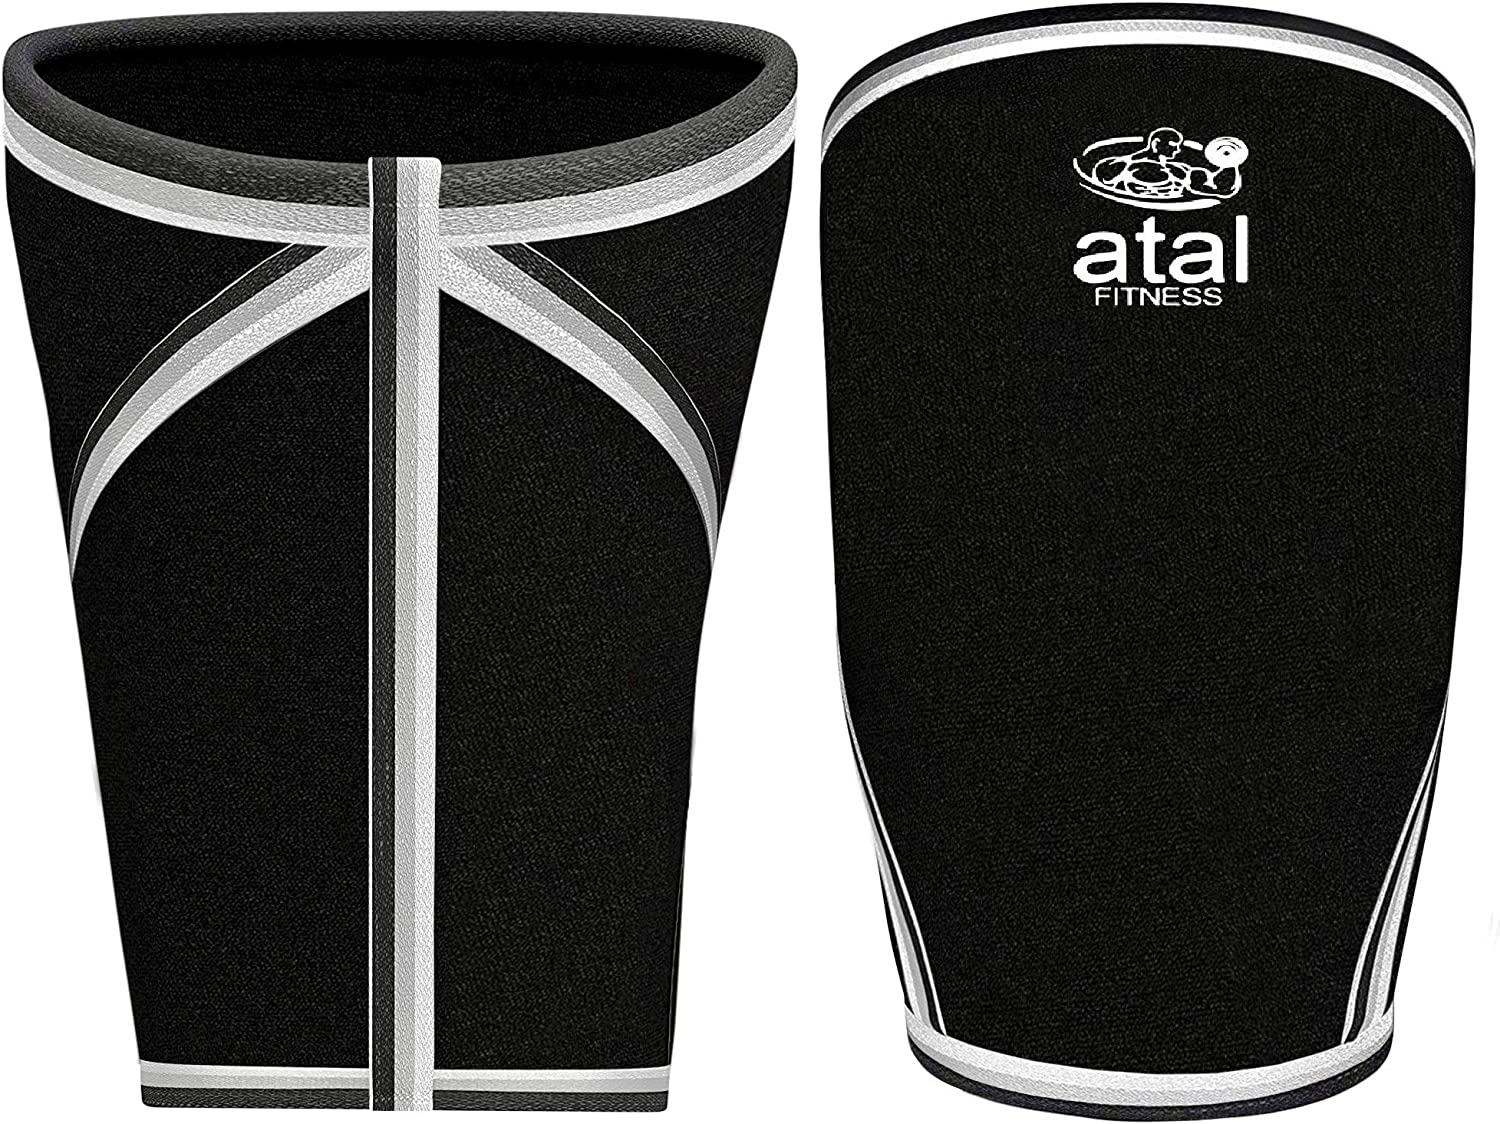 atal Fitness Best Knee Sleeves for Powerlifting 7mm Neoprene Knee Sleeves for Women and Men with a Gym Bag Weightlifting Cross Training Squats and Knee Support